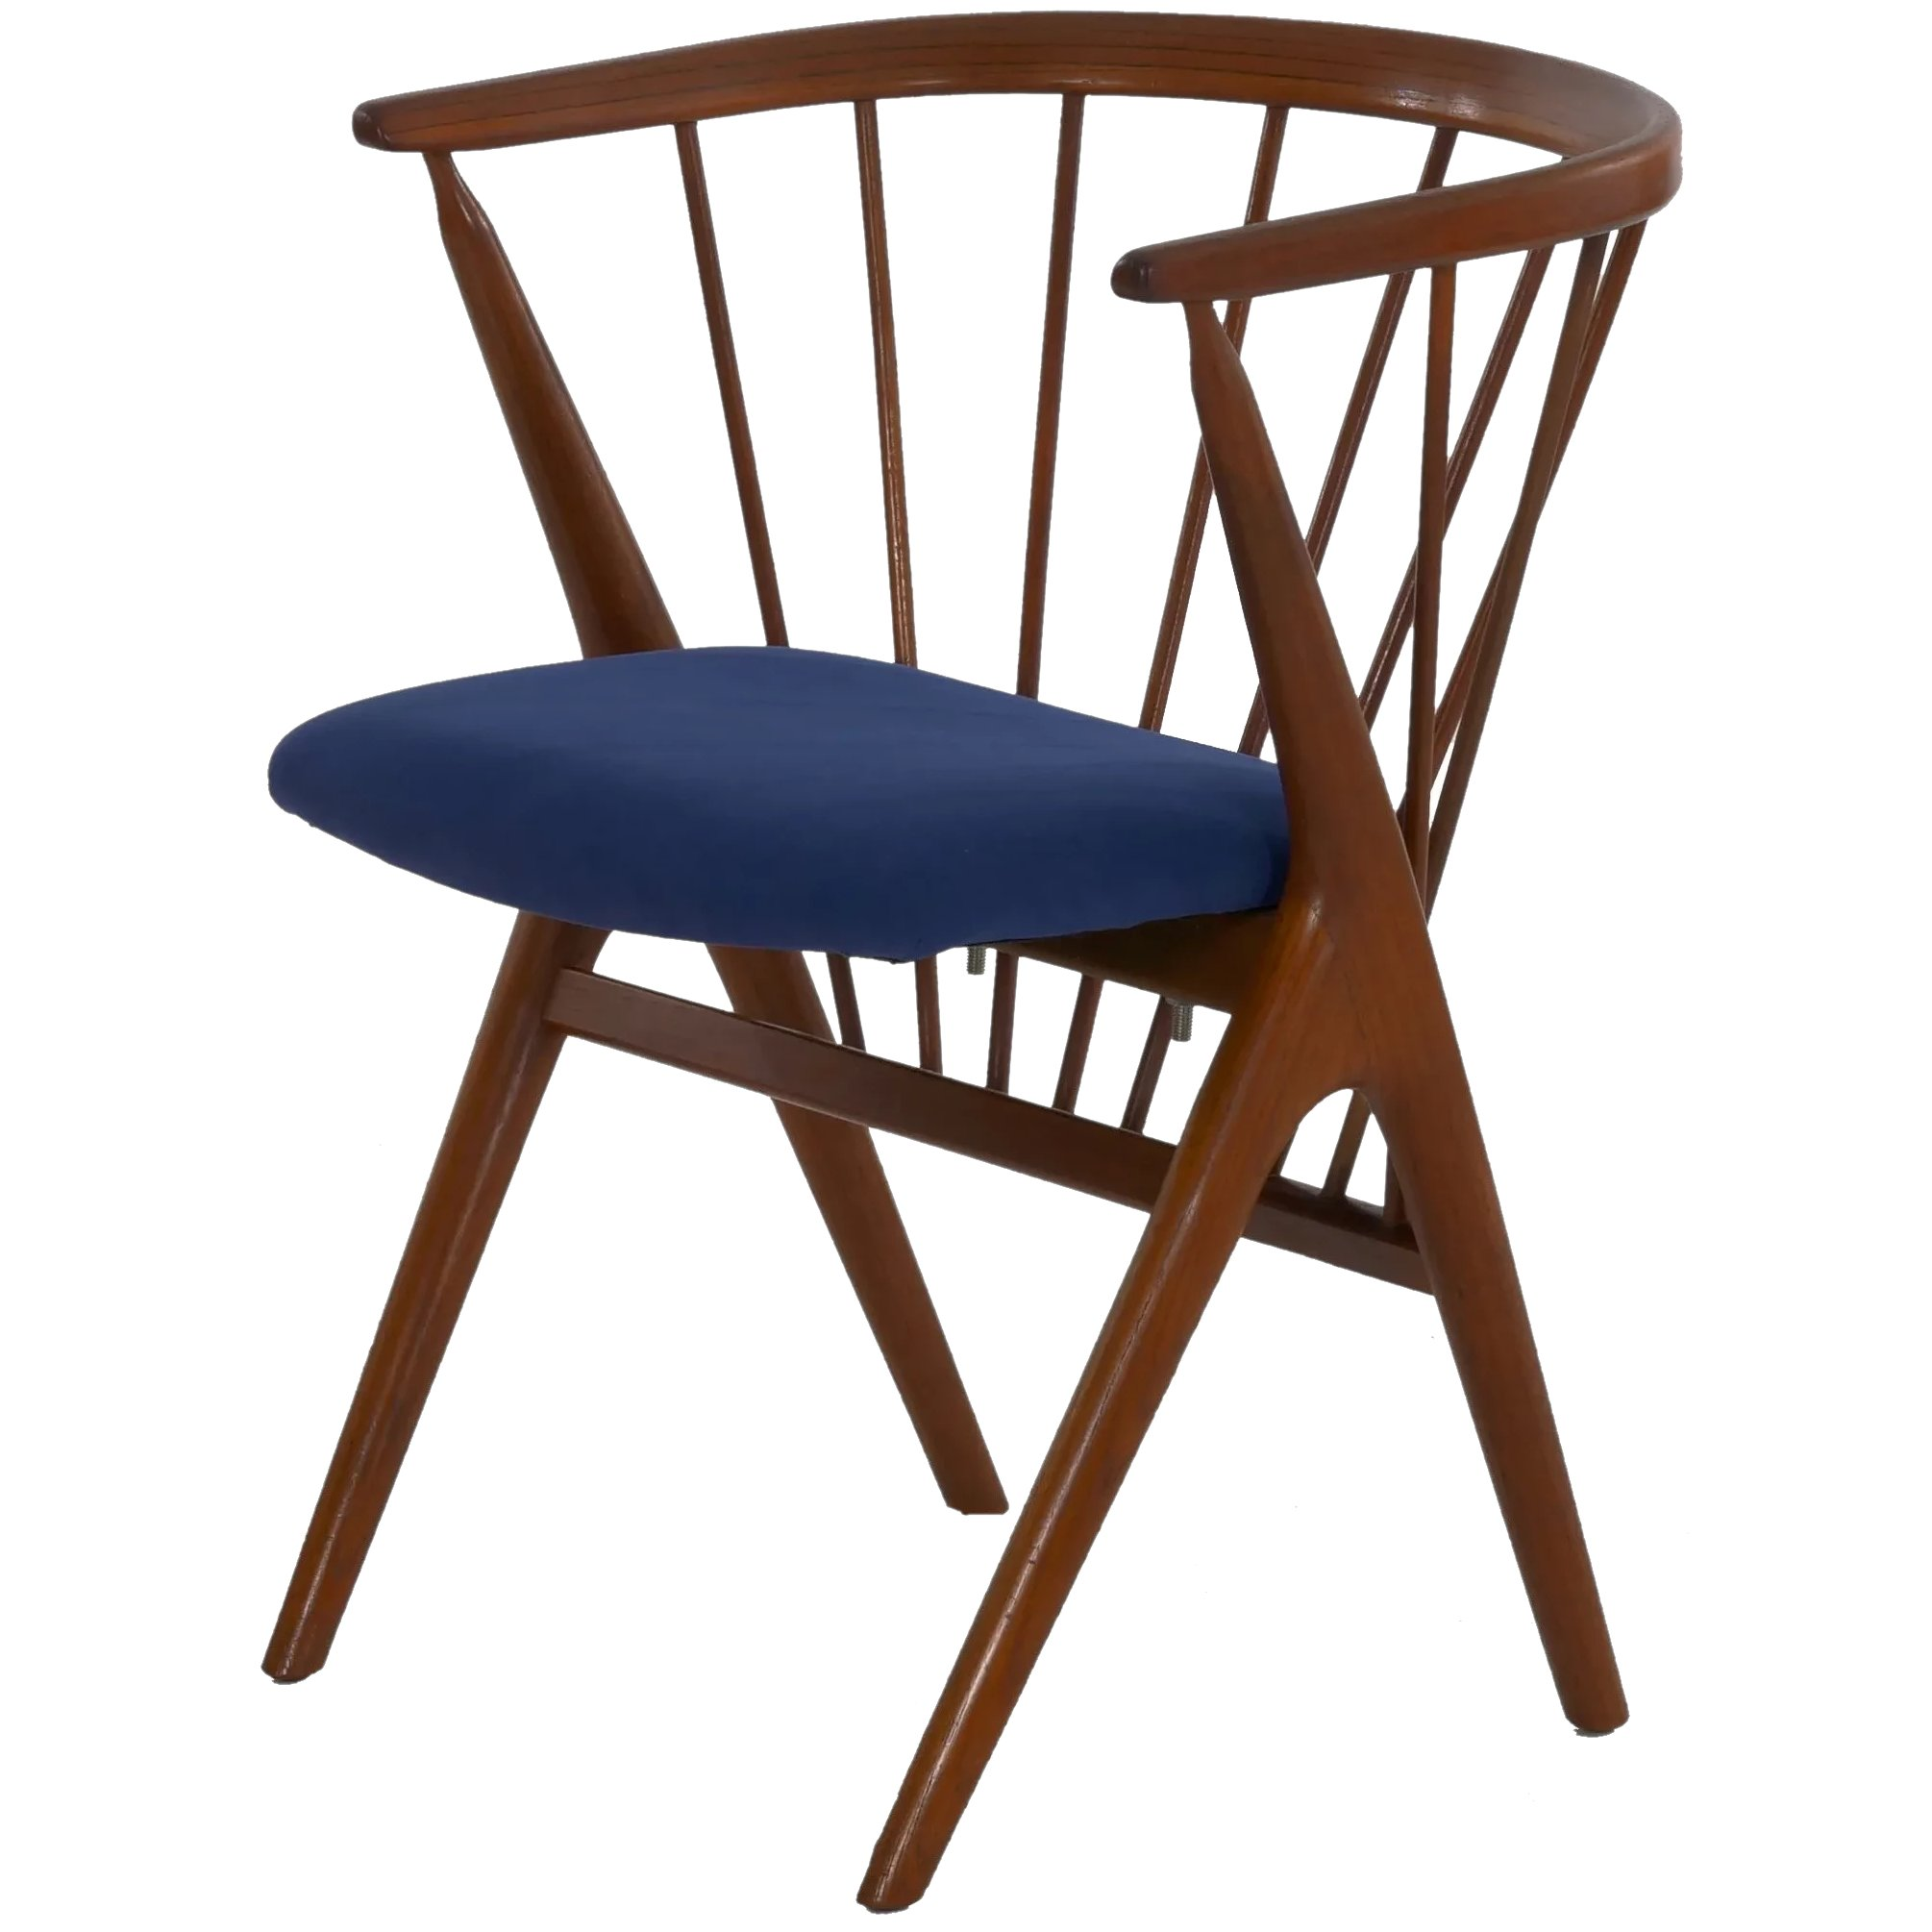 Picture of: Danish Mid Century Modern Spindle Back Arm Chair No 8 By Helge Silla Ltd Ruby Lane